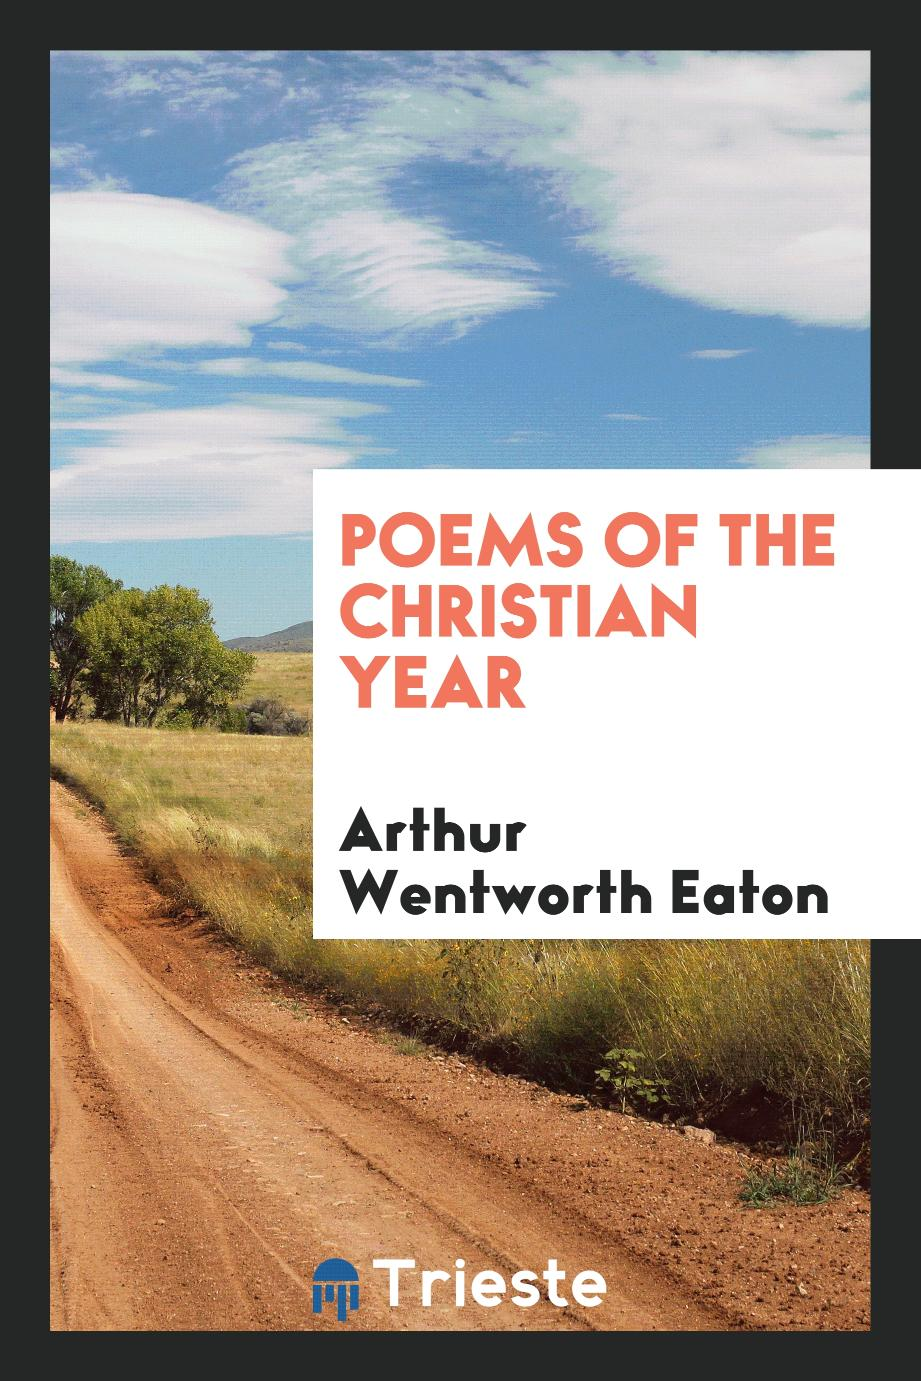 Poems of the Christian Year